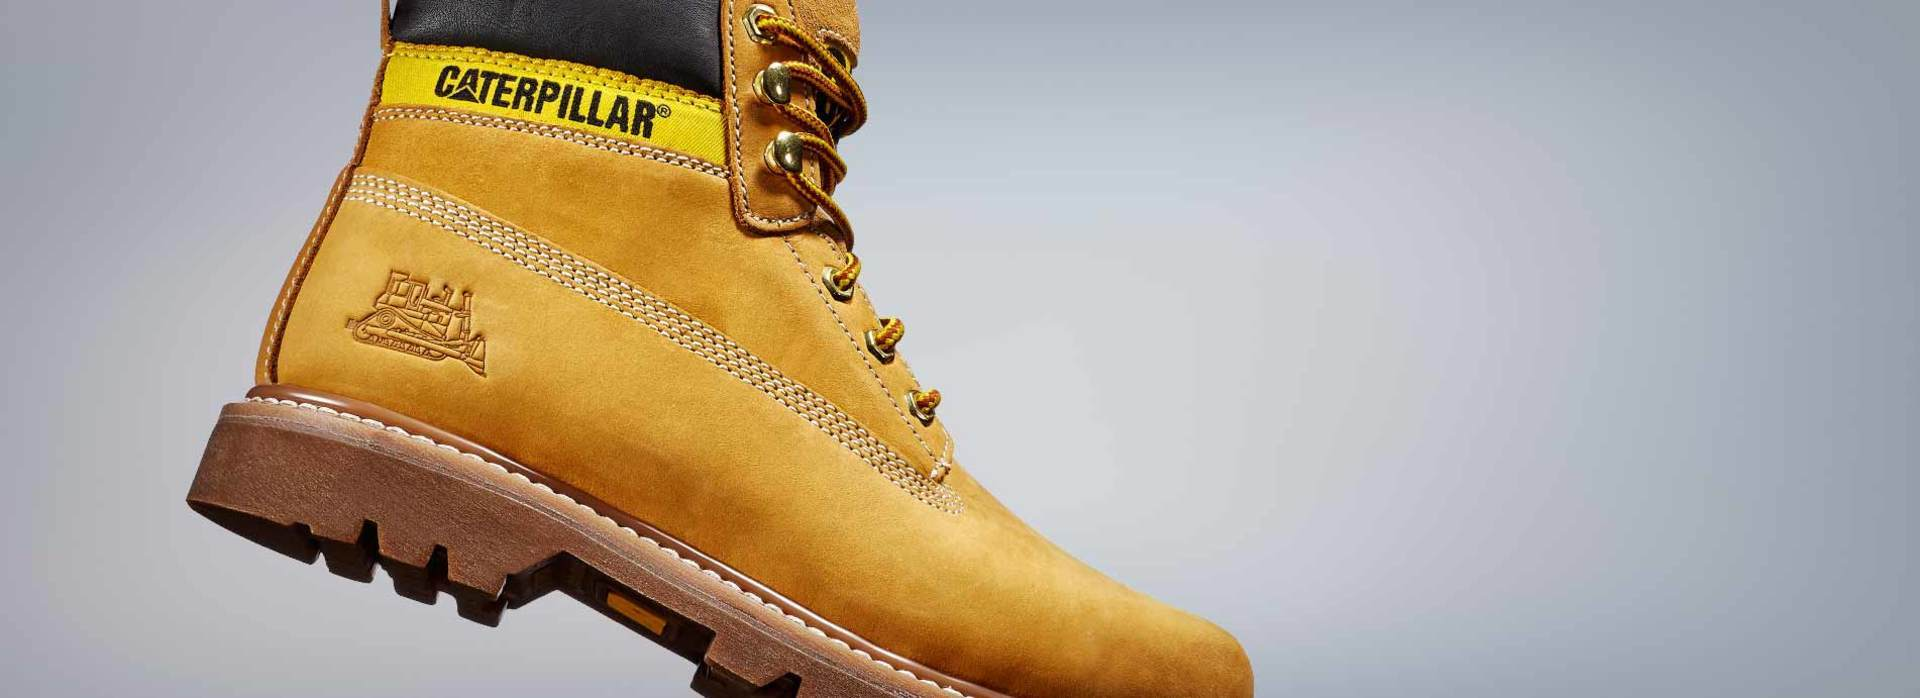 caterpillar shoes edgars accounts contacts direct